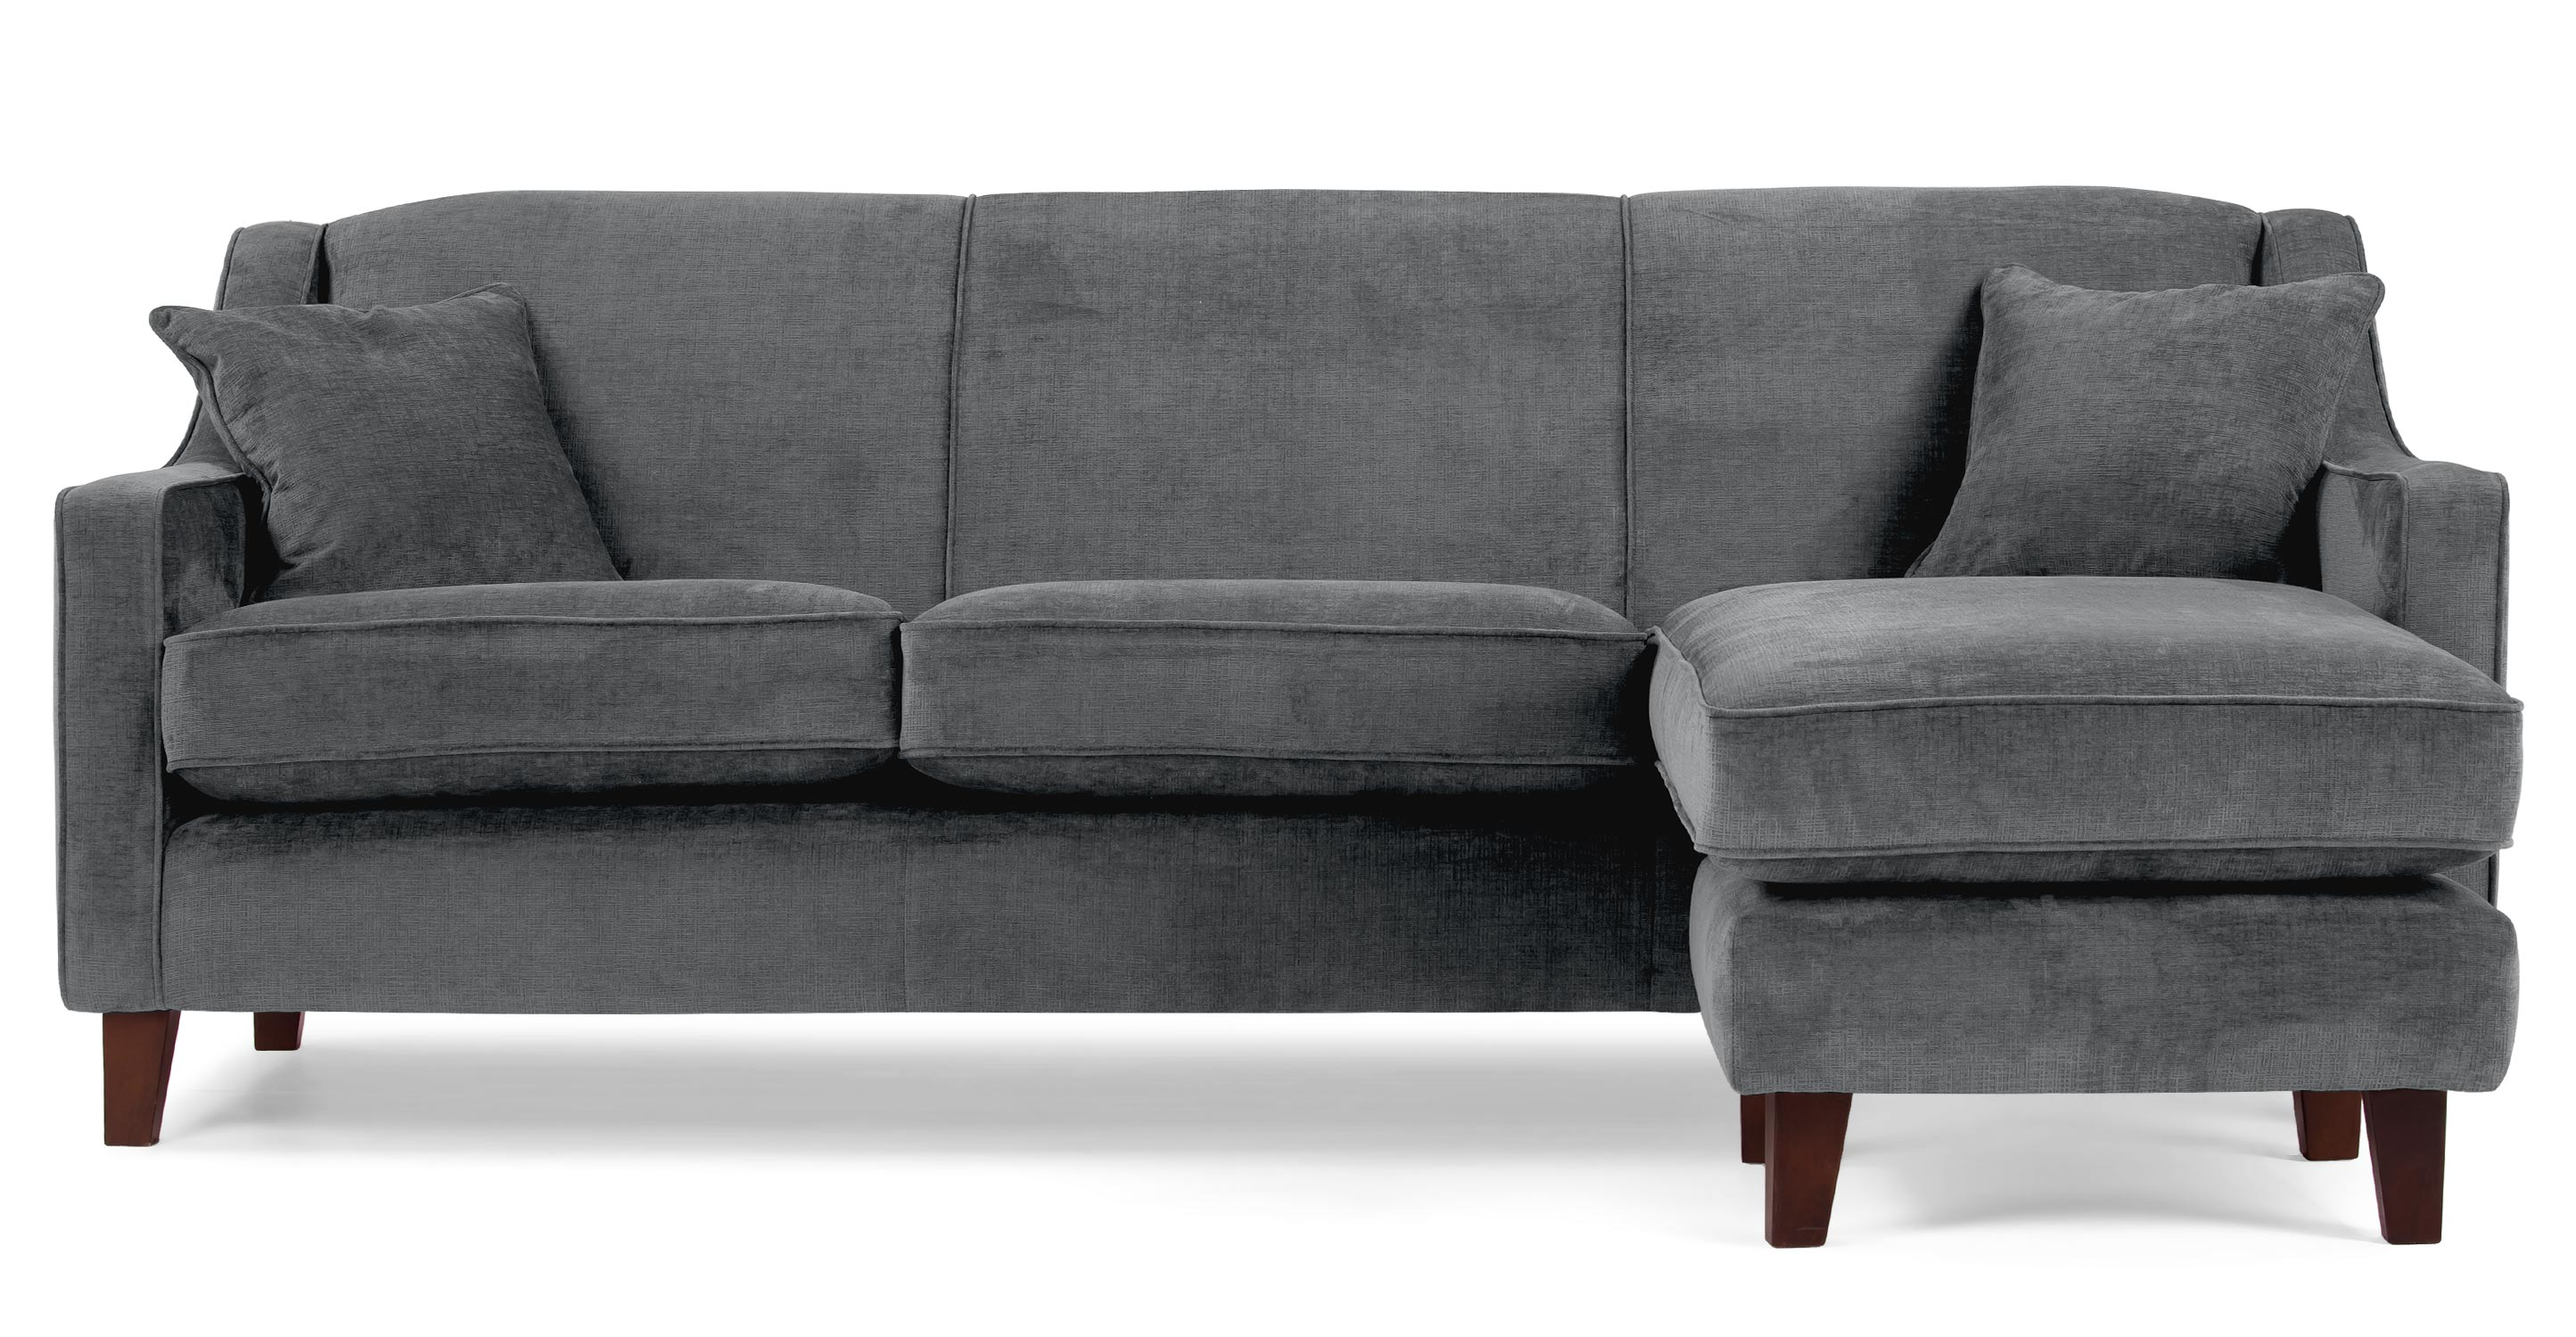 Halston Large Corner Sofa In Dusk Grey Made Com